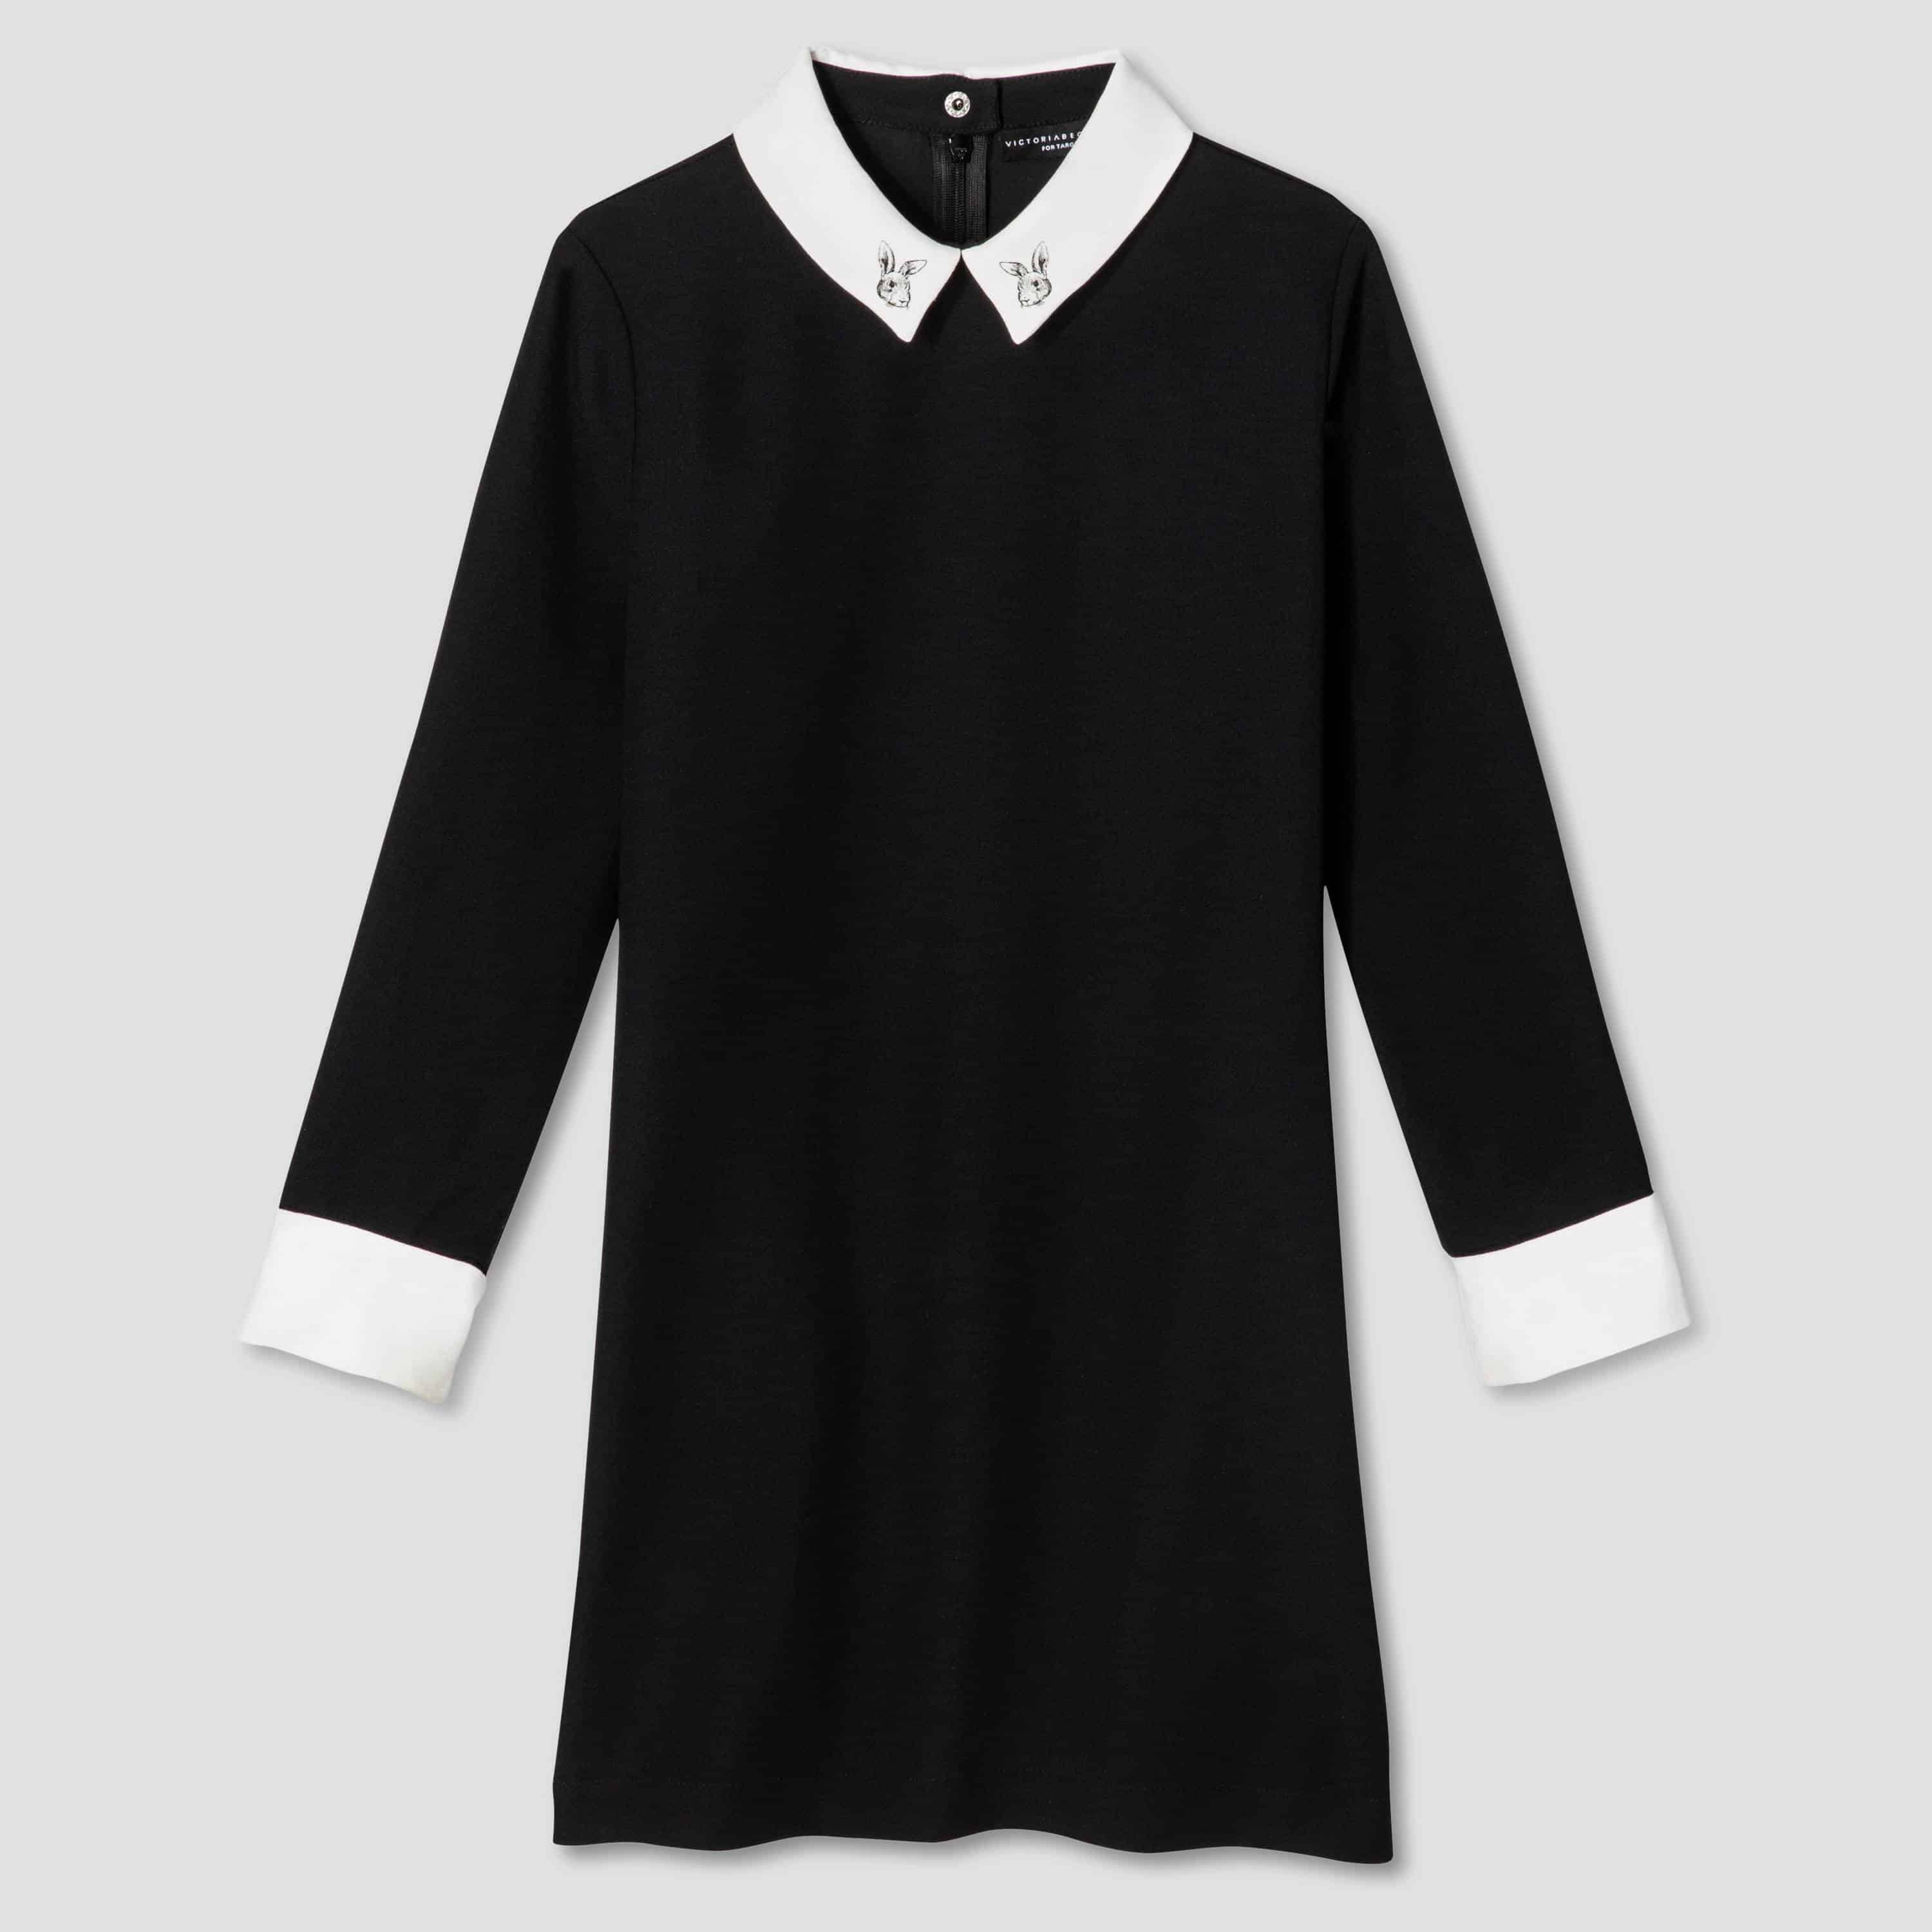 victoria beckham collection - black and white collared girls dress